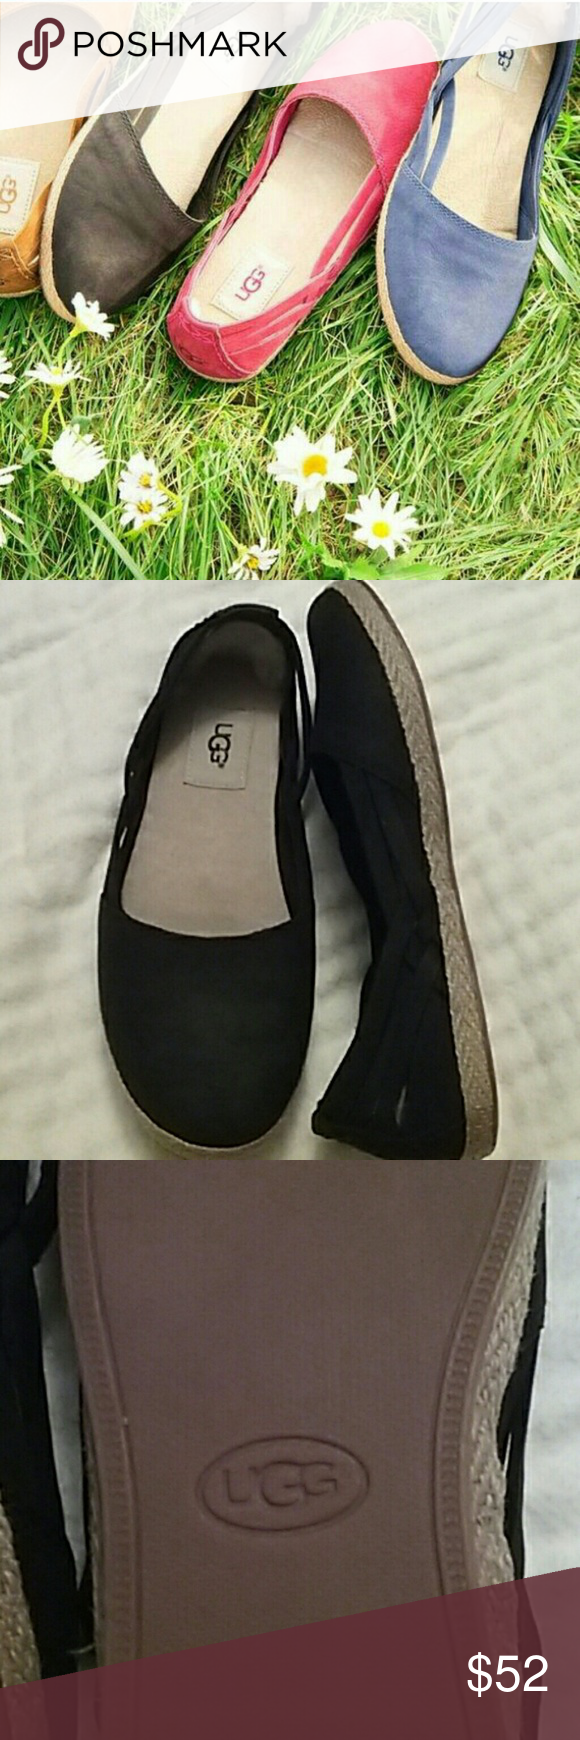 121e49d3dbe UGG SUMMER SHOES DARLING BLACK FLAT SHOES FOR SUMMER. MOST ...